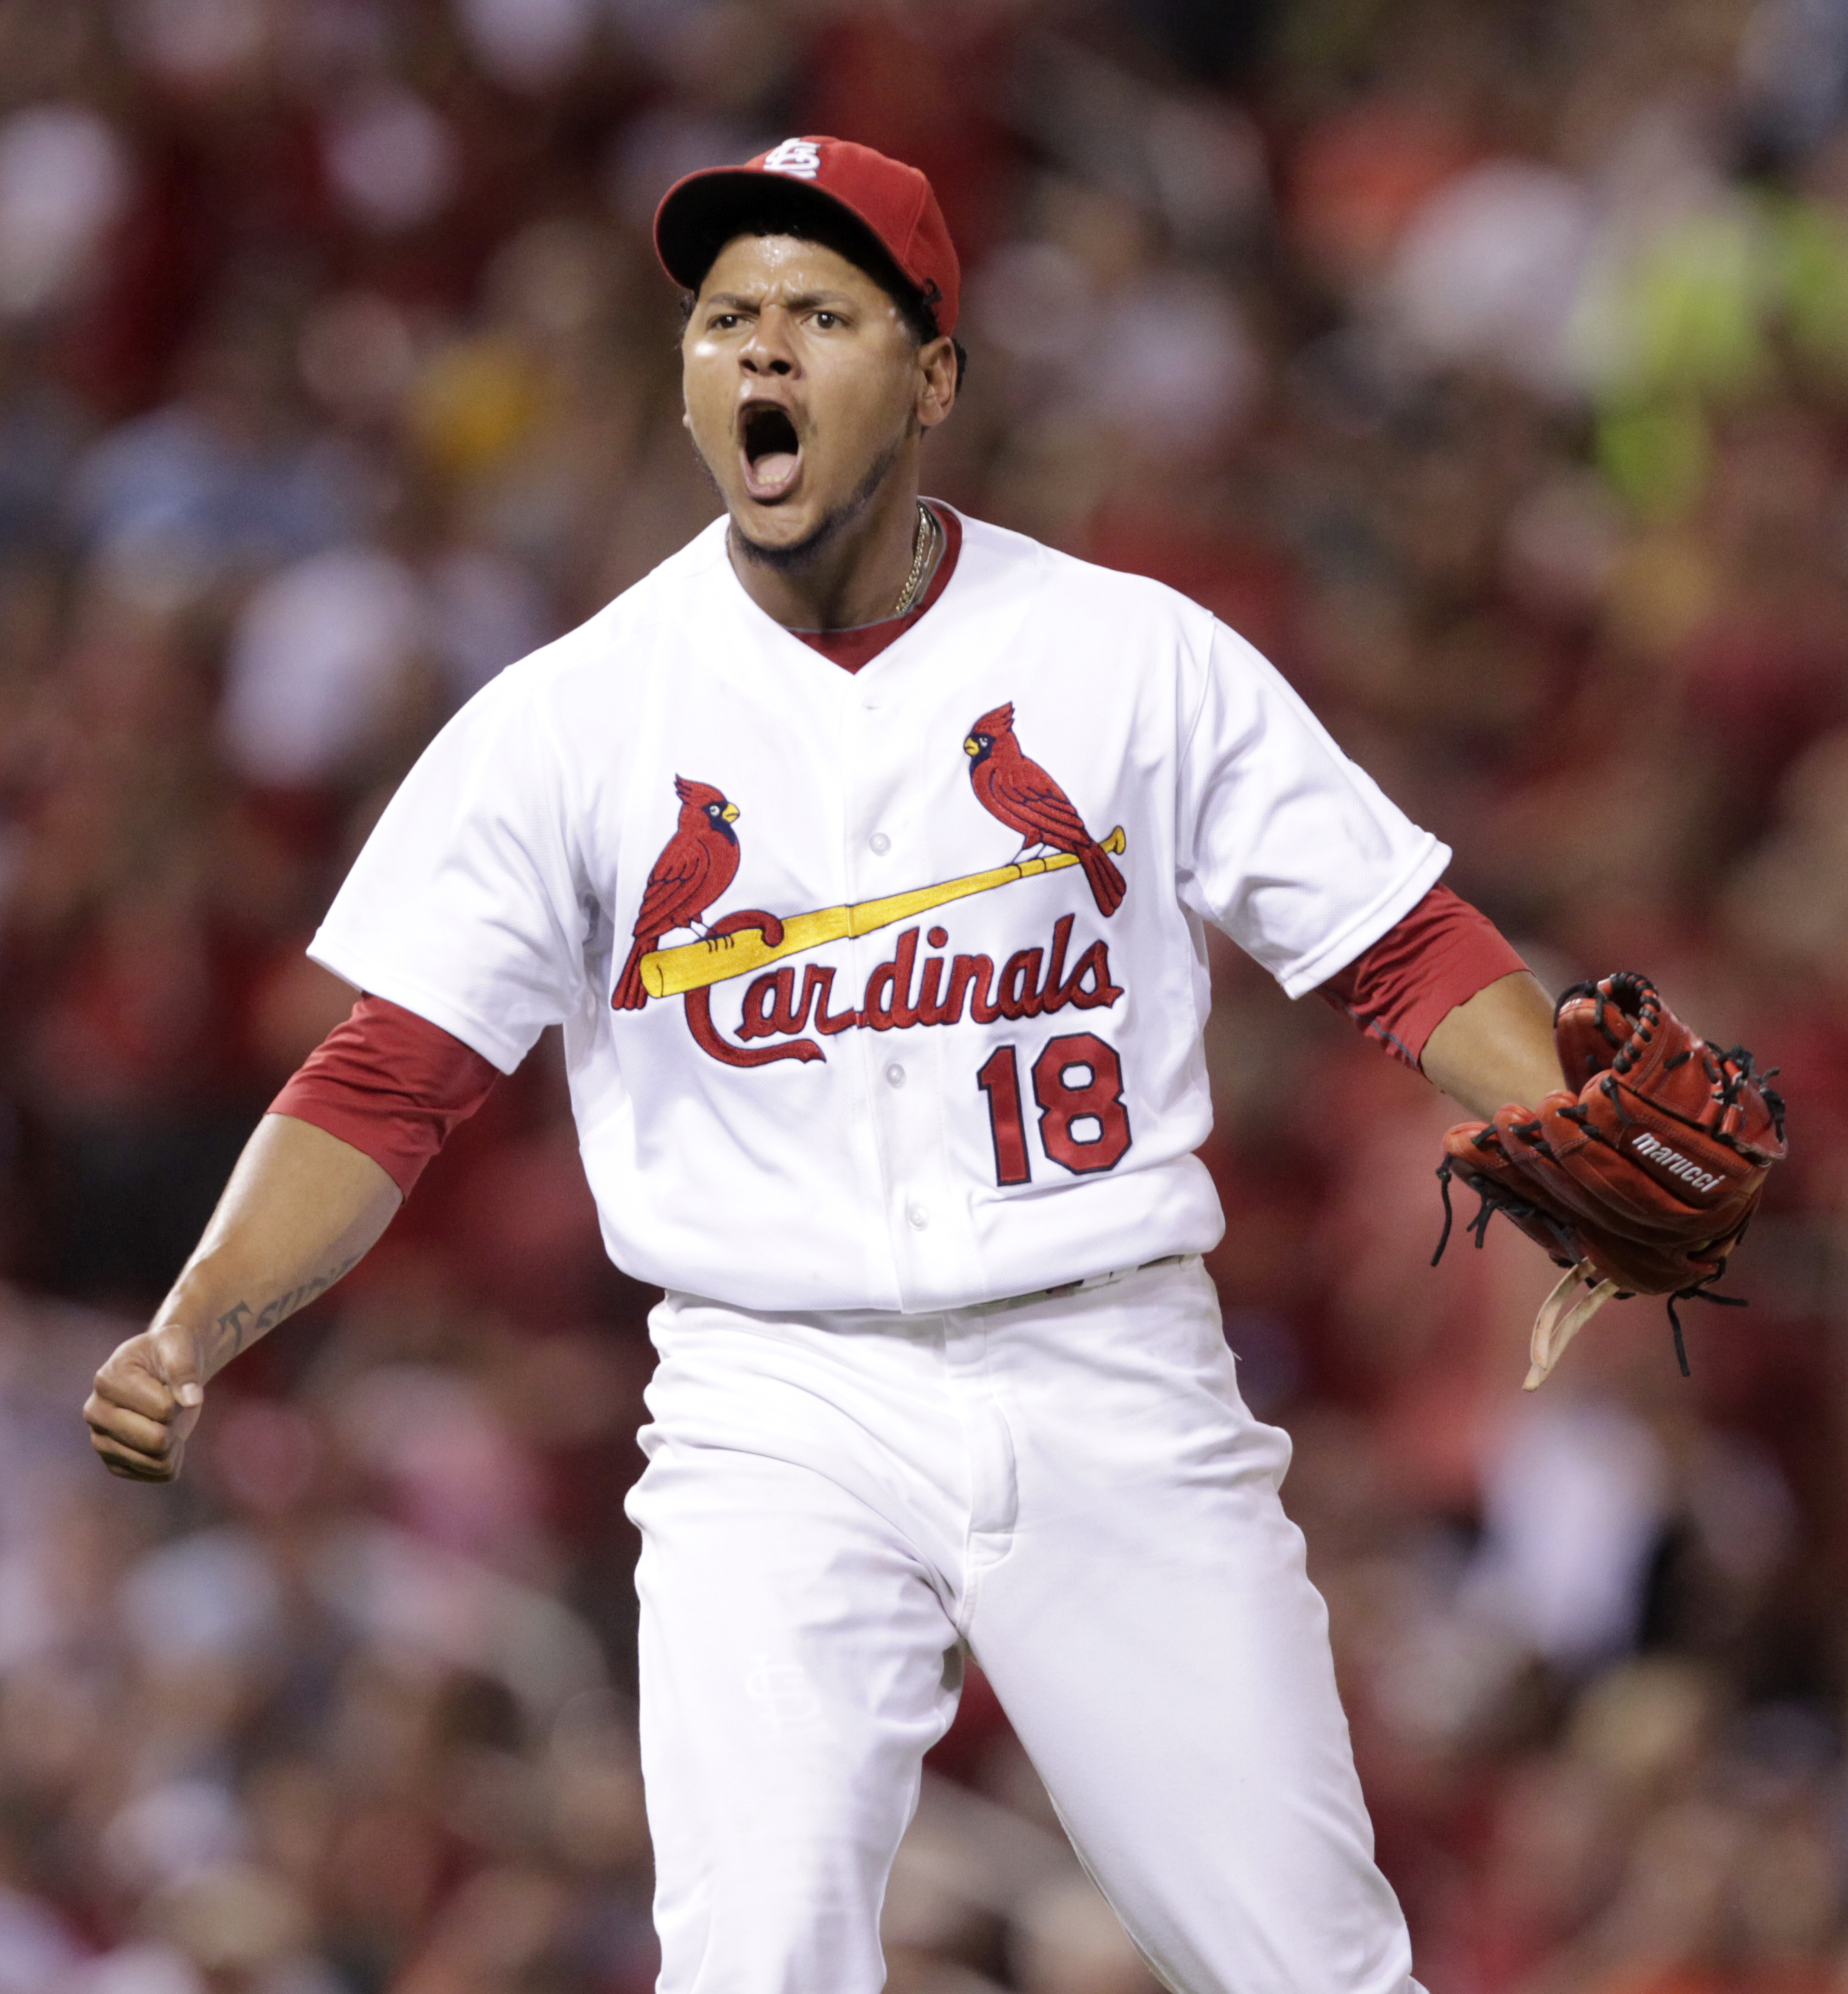 St. Louis Cardinals starting pitcher Carlos Martinez (18) reacts to striking out Pittsburgh Pirates' Jung Ho Kang to end the eighth inning in a baseball game, Tuesday, Aug. 11, 2015, in St. Louis. (AP Photo/Tom Gannam)